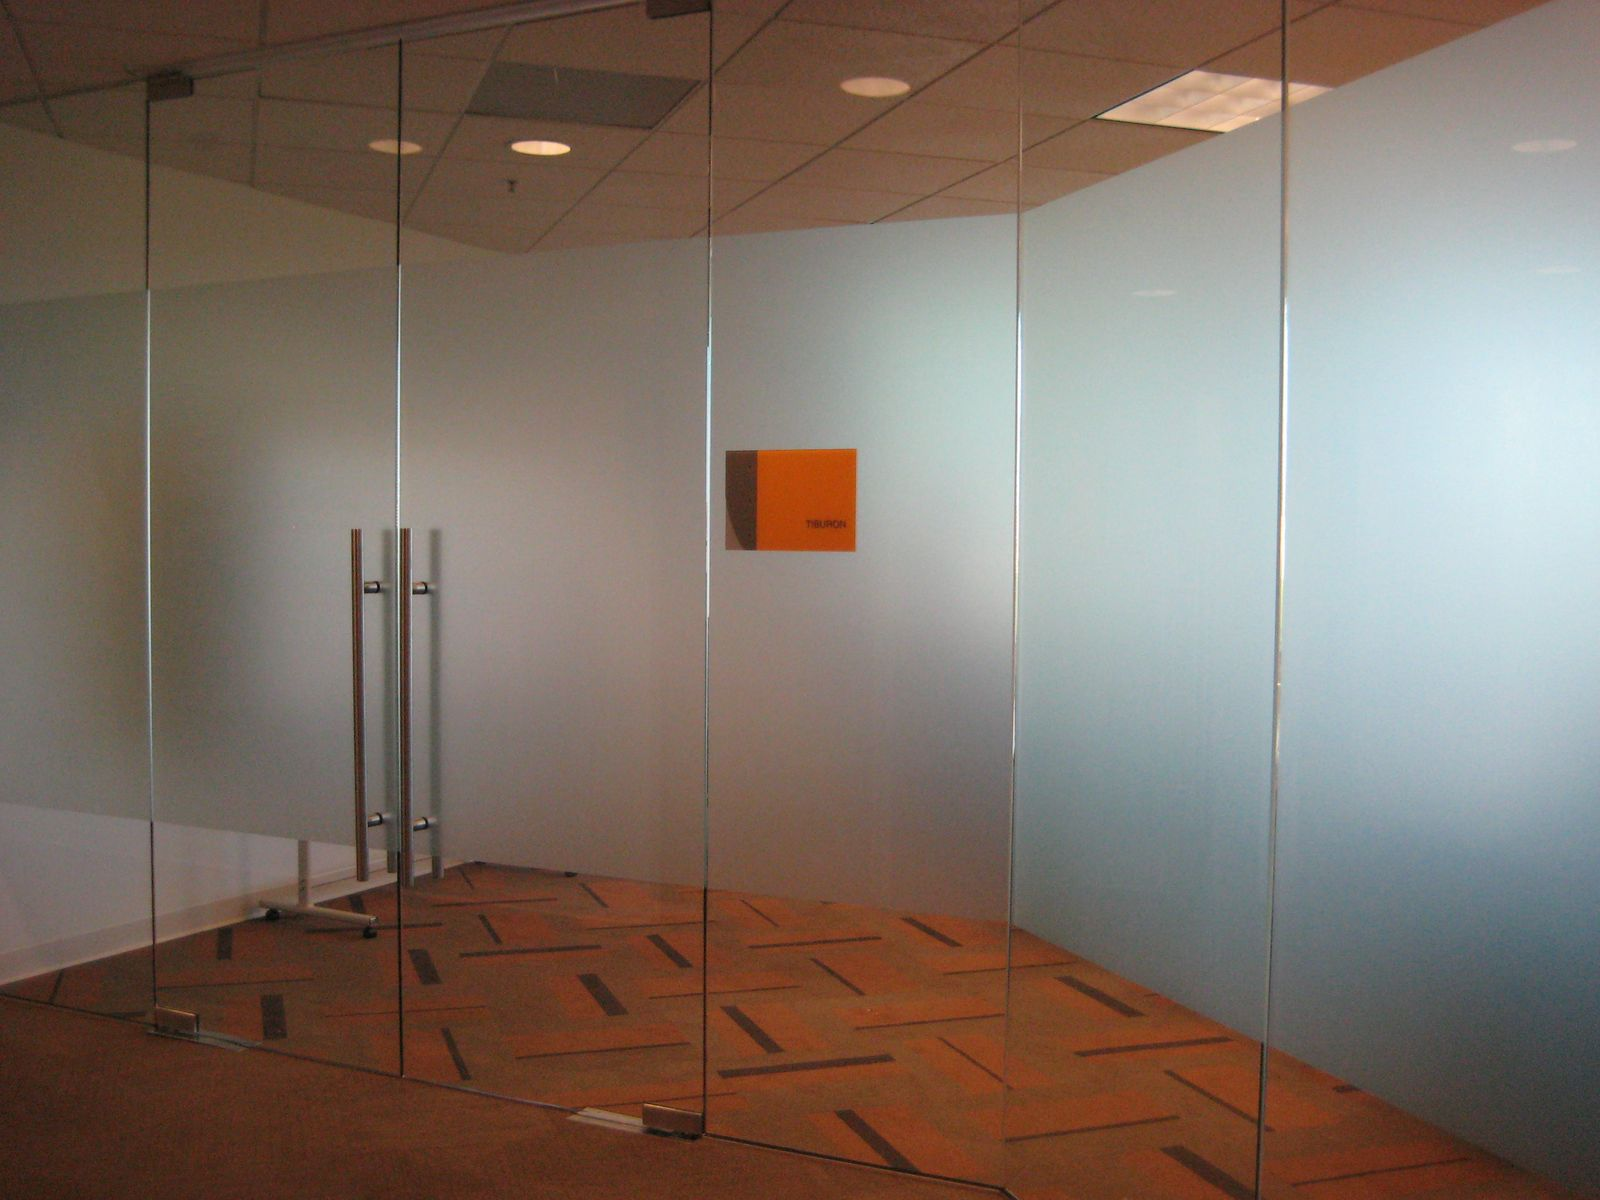 Translucent Window Film 3m Commercial Window Tinting Privacy Film By Reflections Glass